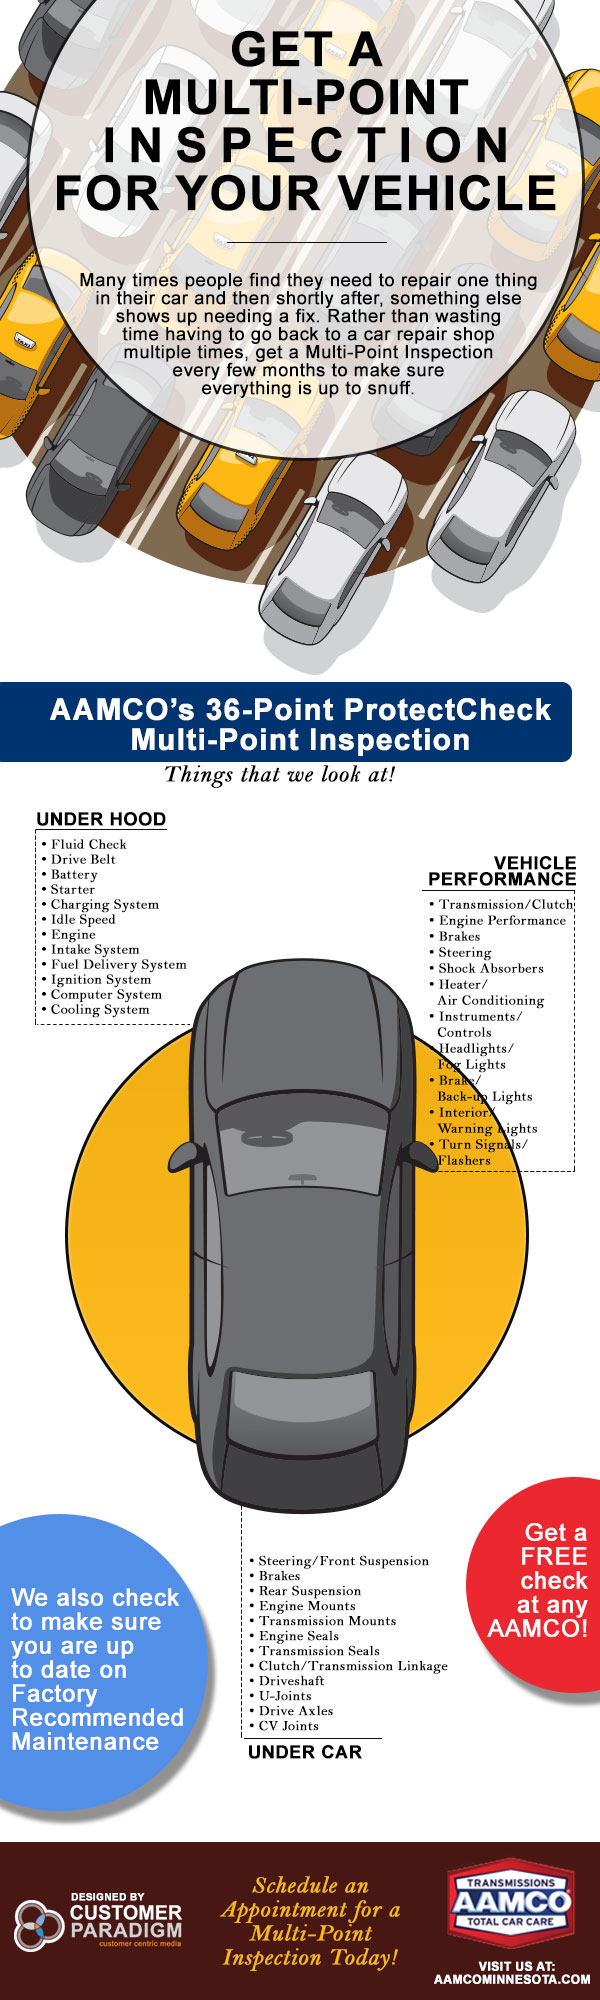 Multi-Point Inspection Infographic - Transmission Repair - Auto Repair - AAMCO Minnesota